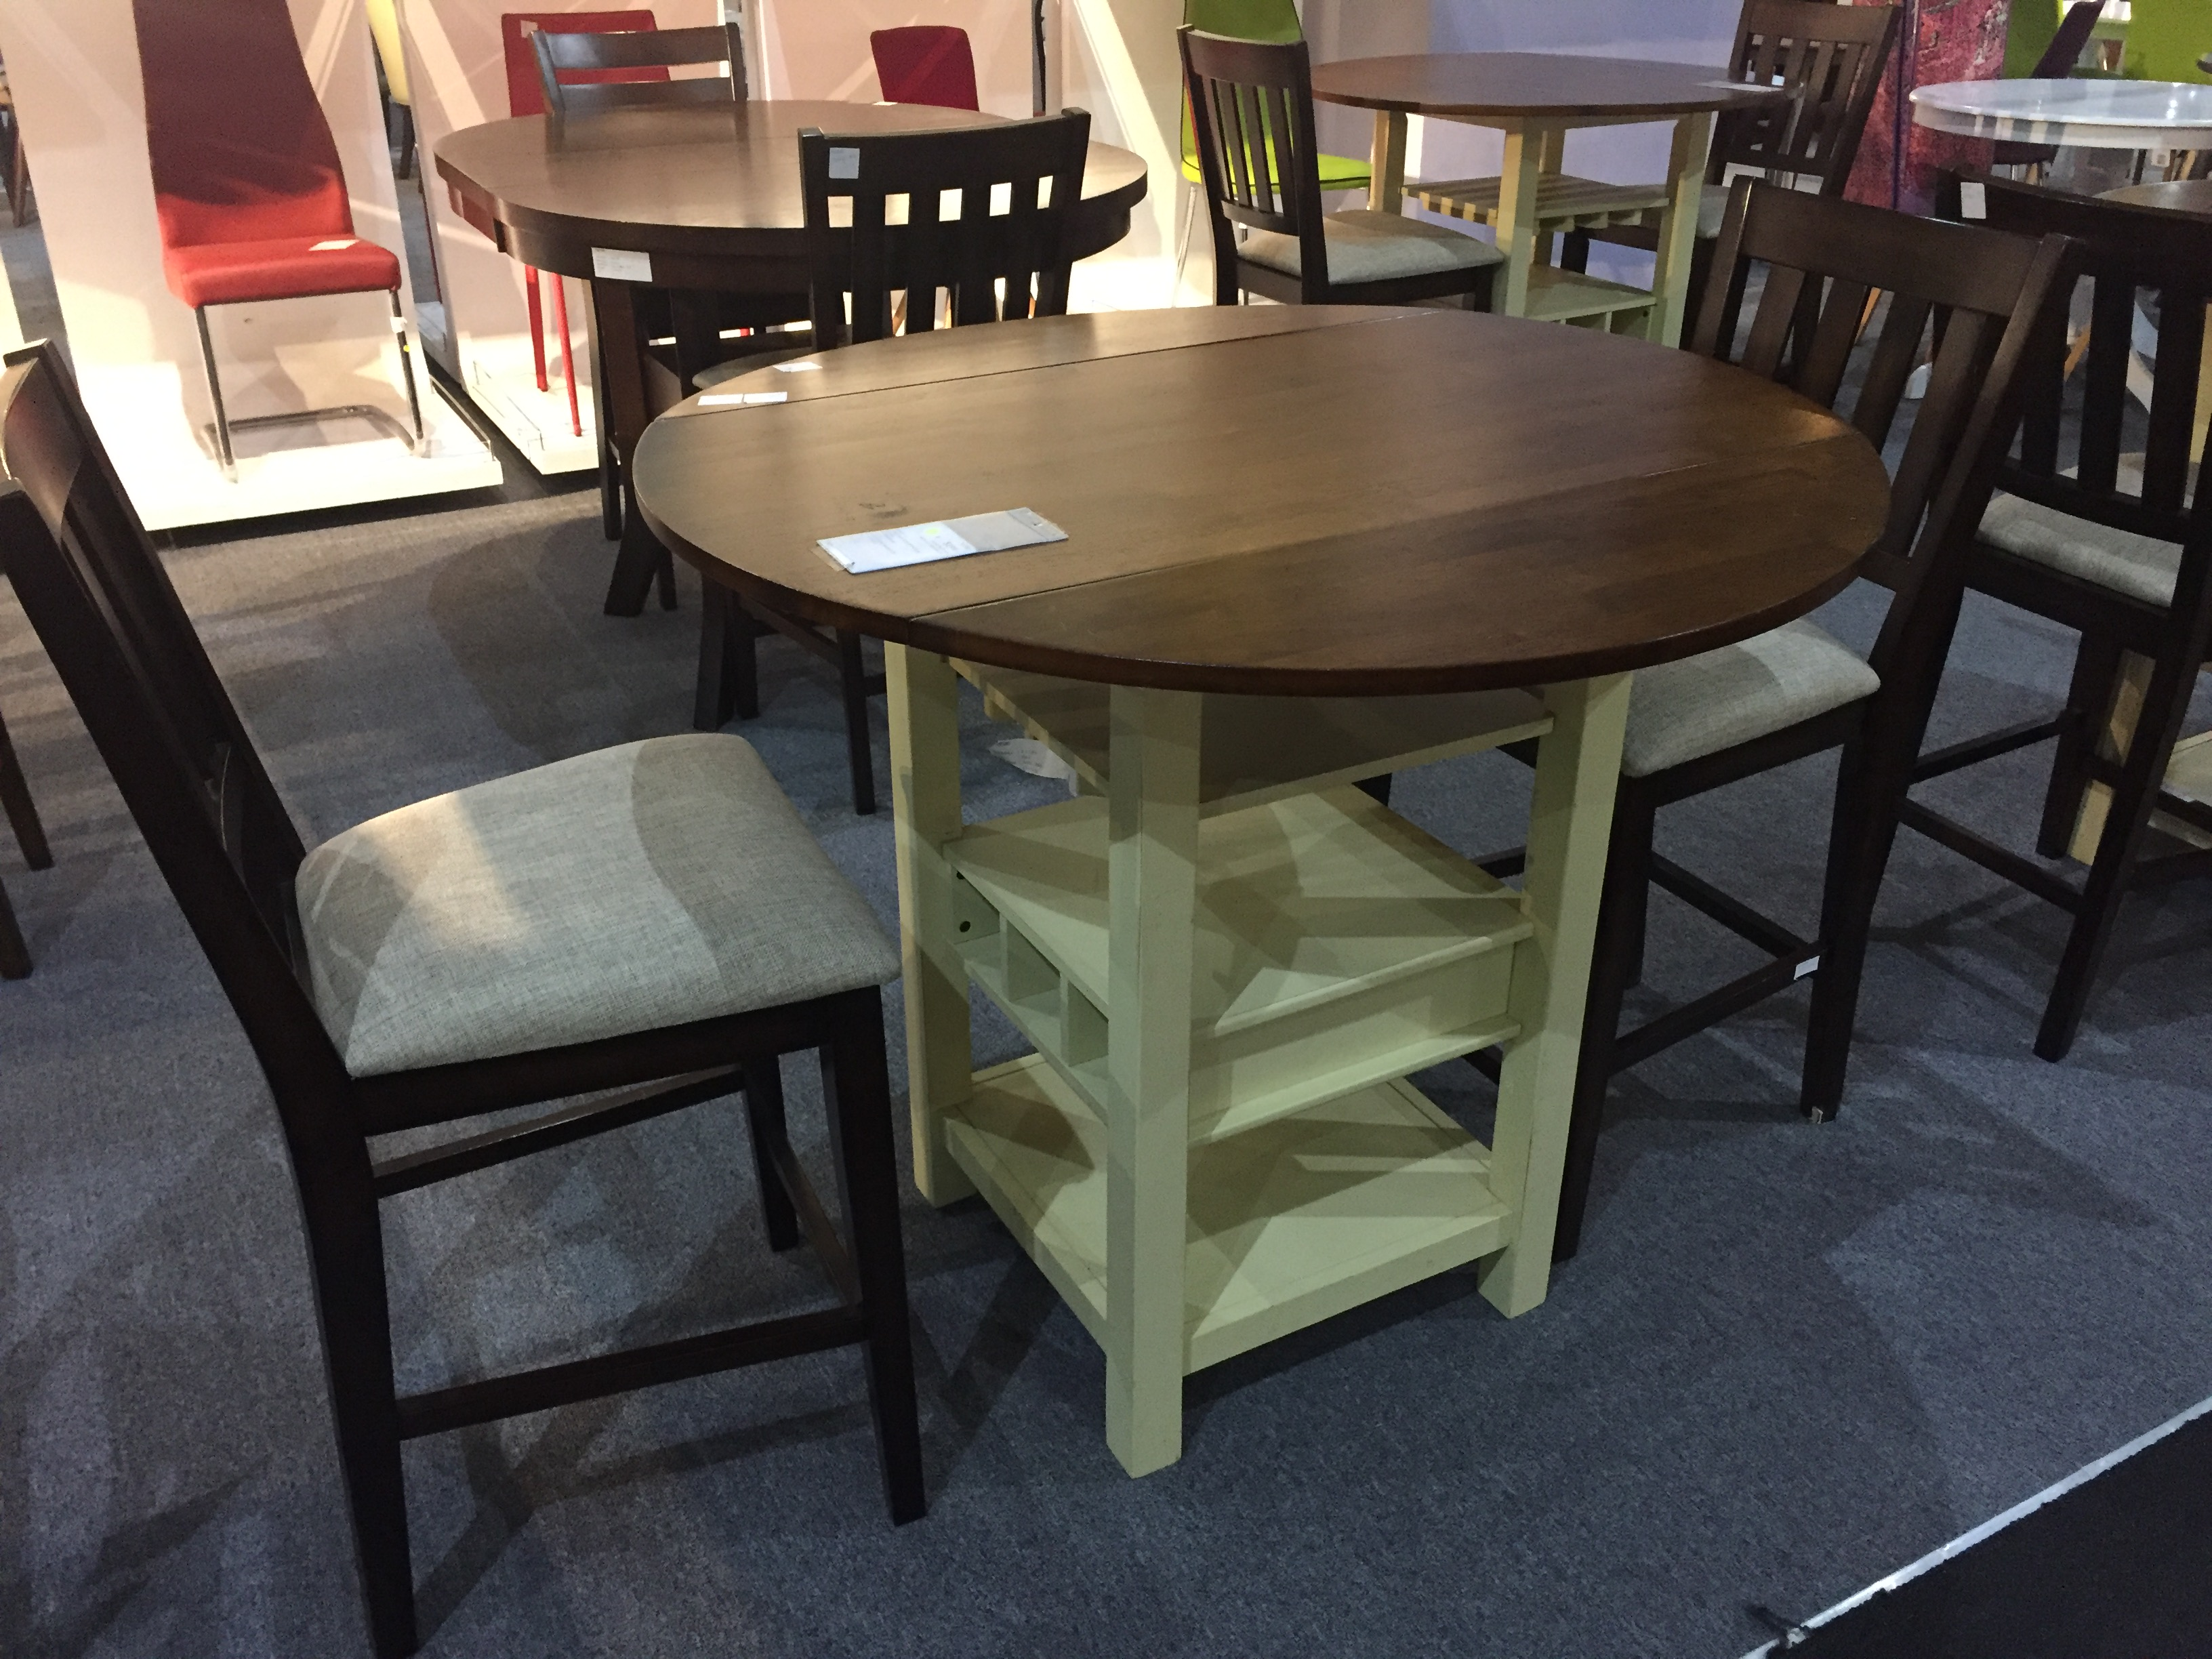 This wine rack table beckons